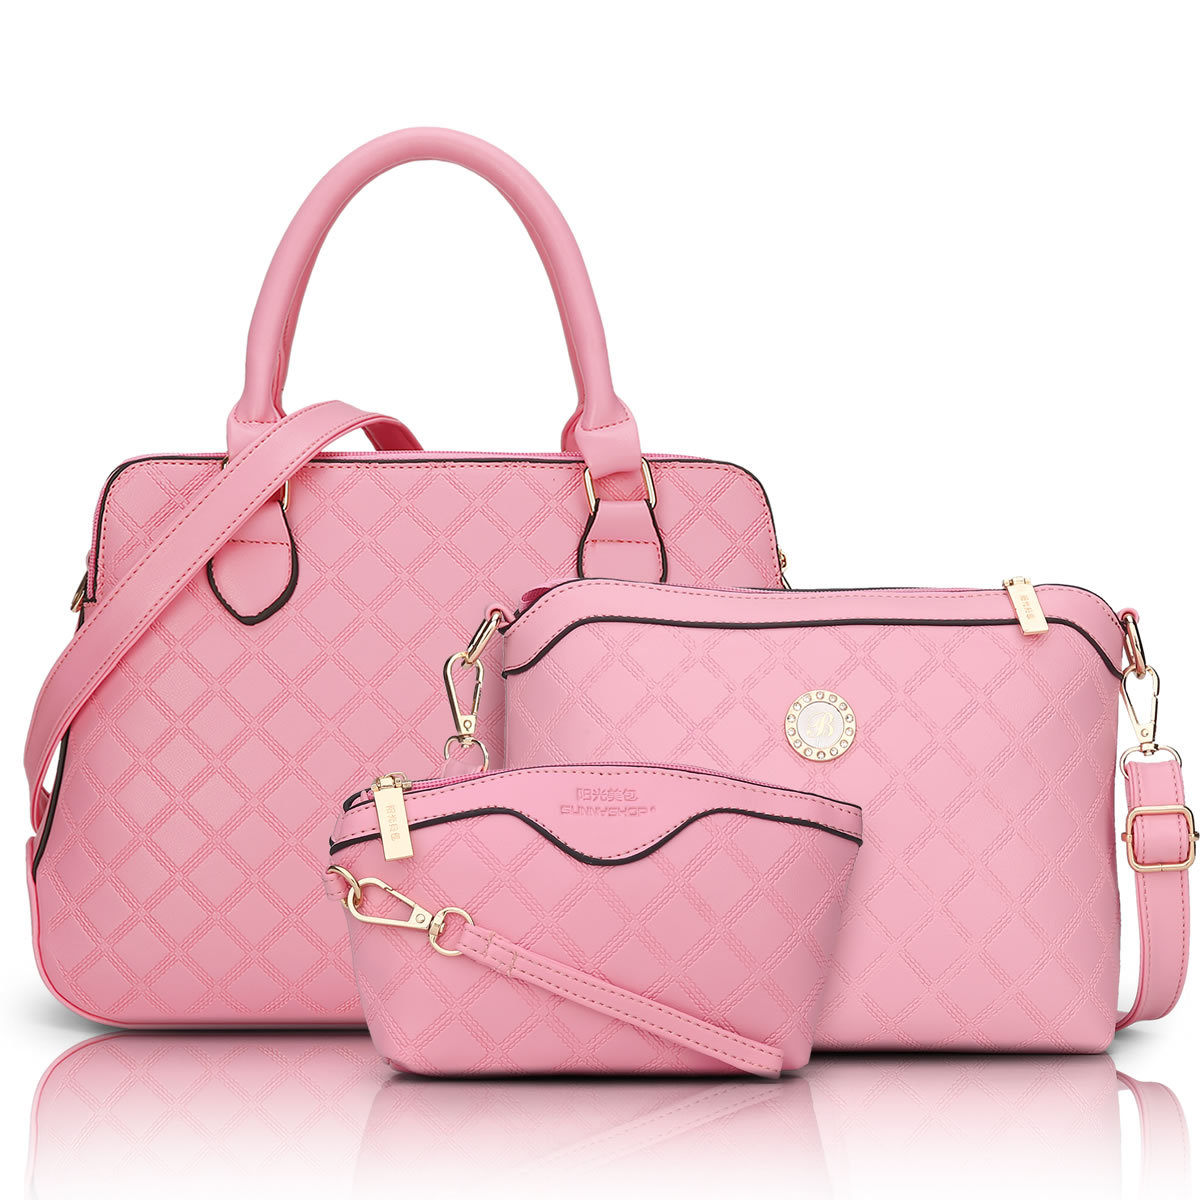 3 Bag/Set  New  Brand Designer Women Bag Plaid Fashion Femal Shoulder Bag High Quality Lady Messenger Bag Pink Color Q5